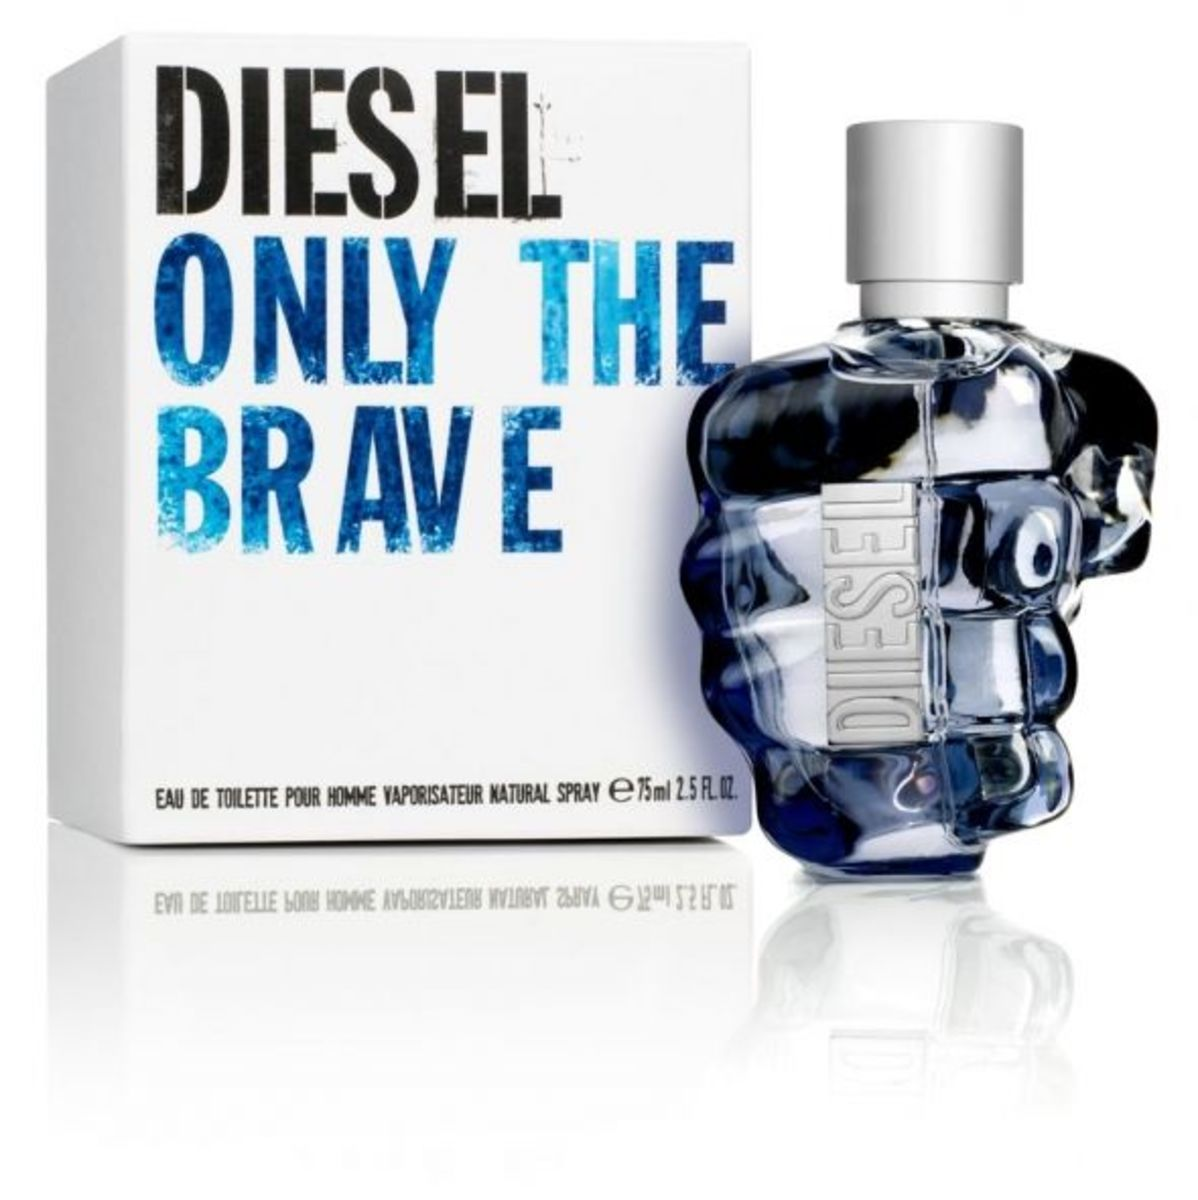 Diesel Only the Brave (2009)